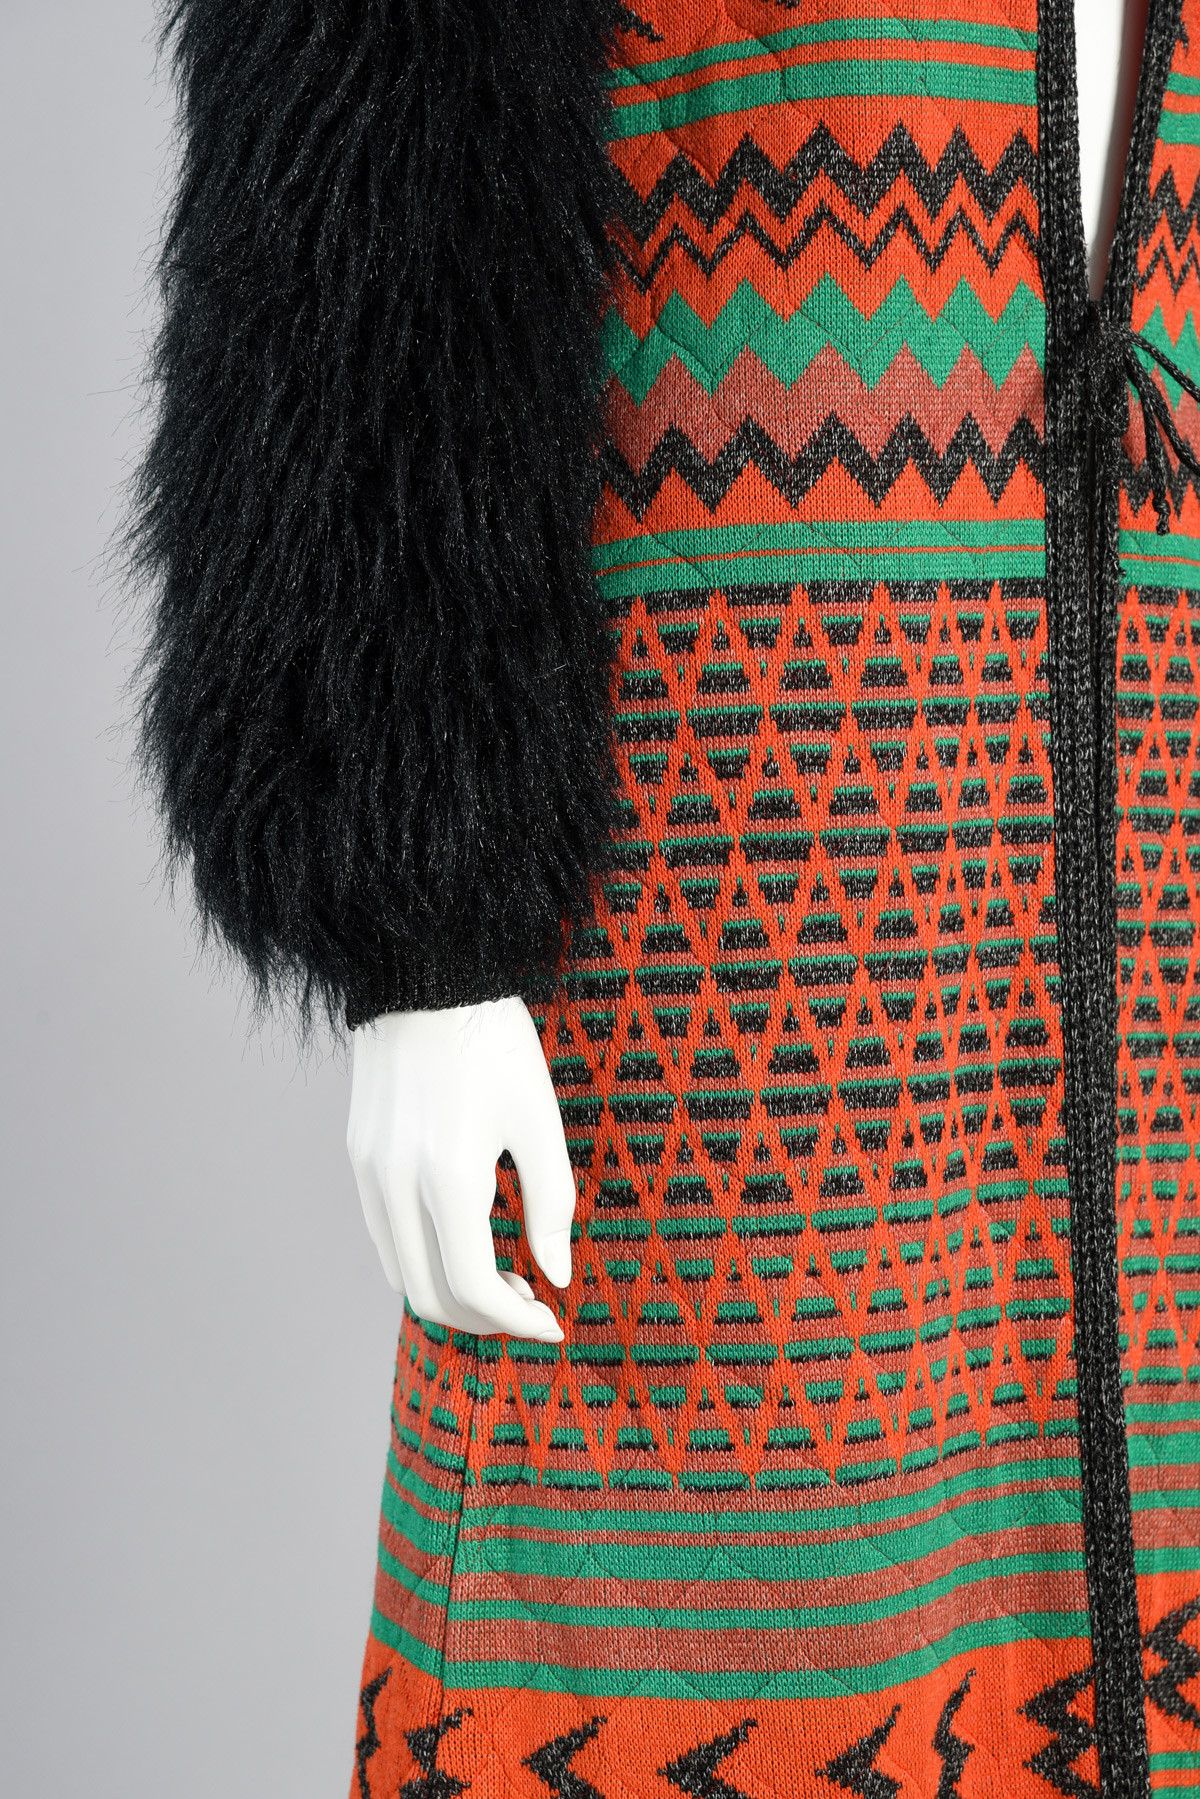 70s Giorgio Sant'Angelo Knit Maxi Jacket w/Faux Fur Sleeves | BUSTOWN MODERN